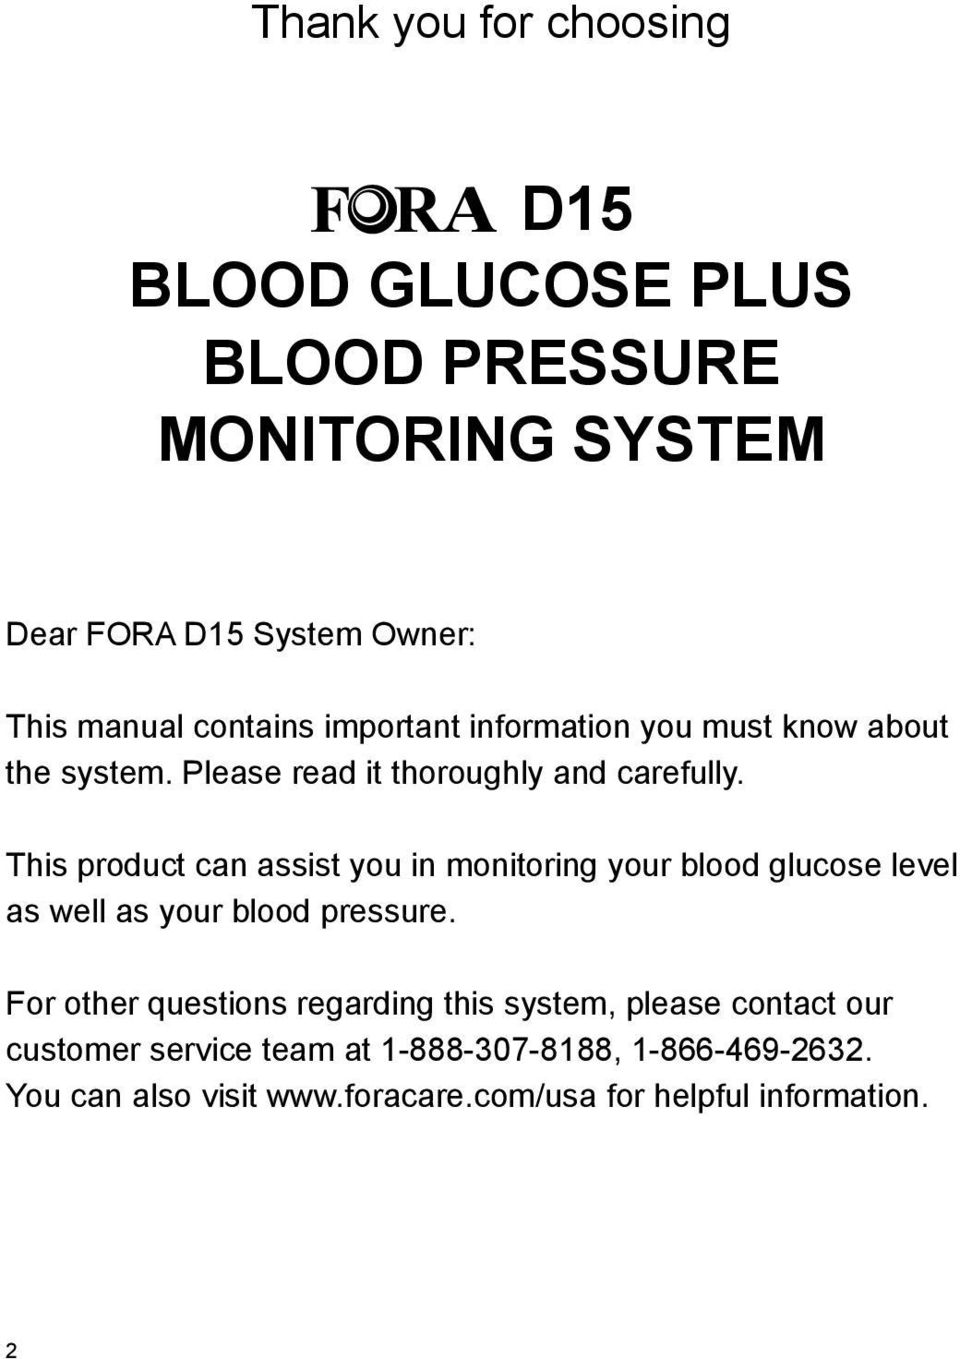 This product can assist you in monitoring your blood glucose level as well as your blood pressure.